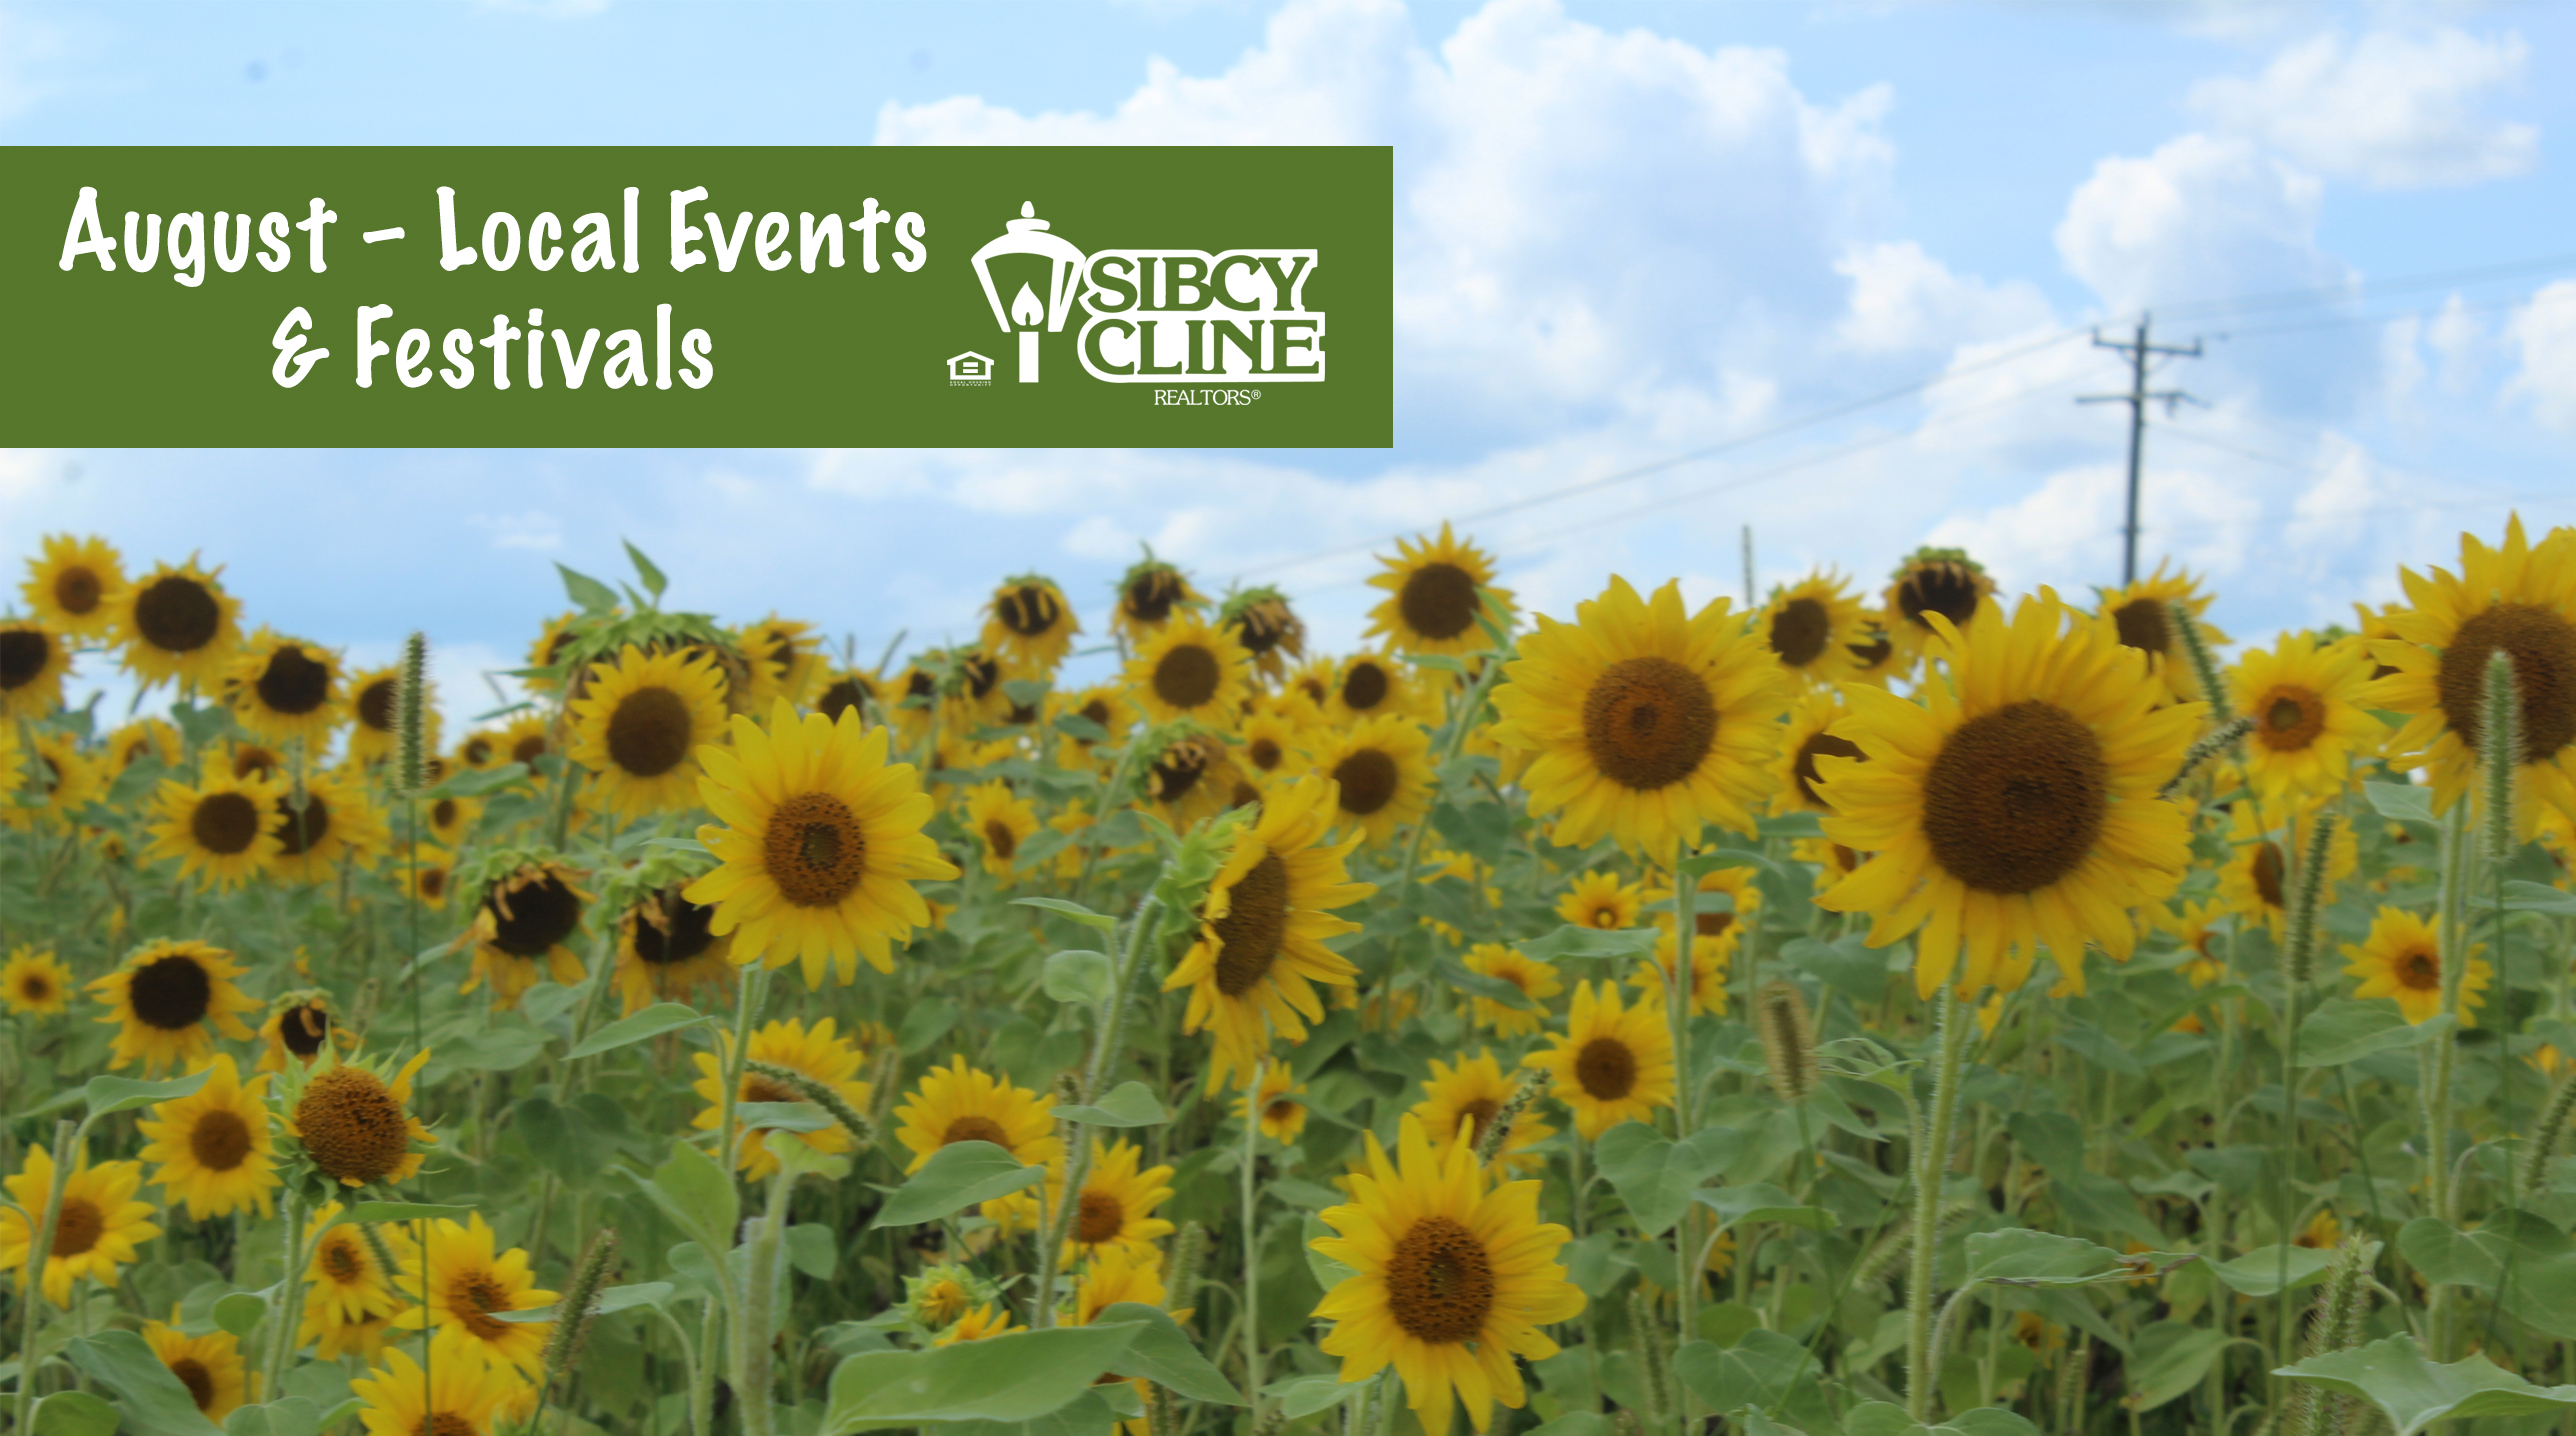 August 2019 Events, Festivals and Fun Things to Do in